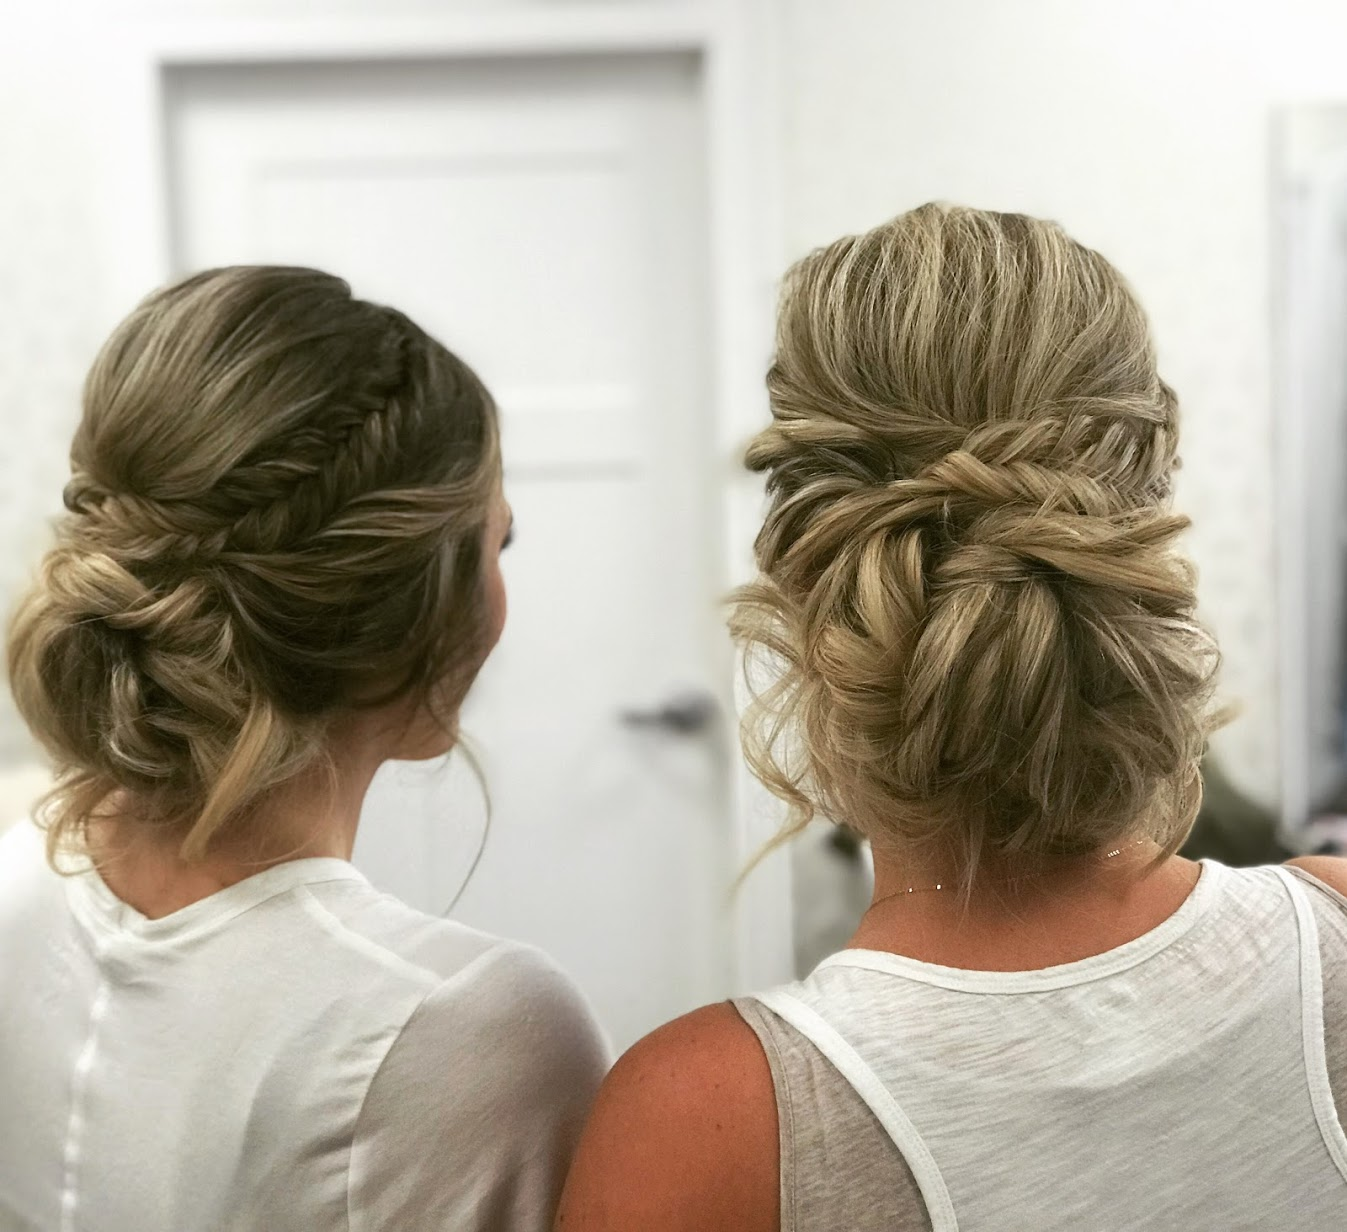 Bridesmaids Updo